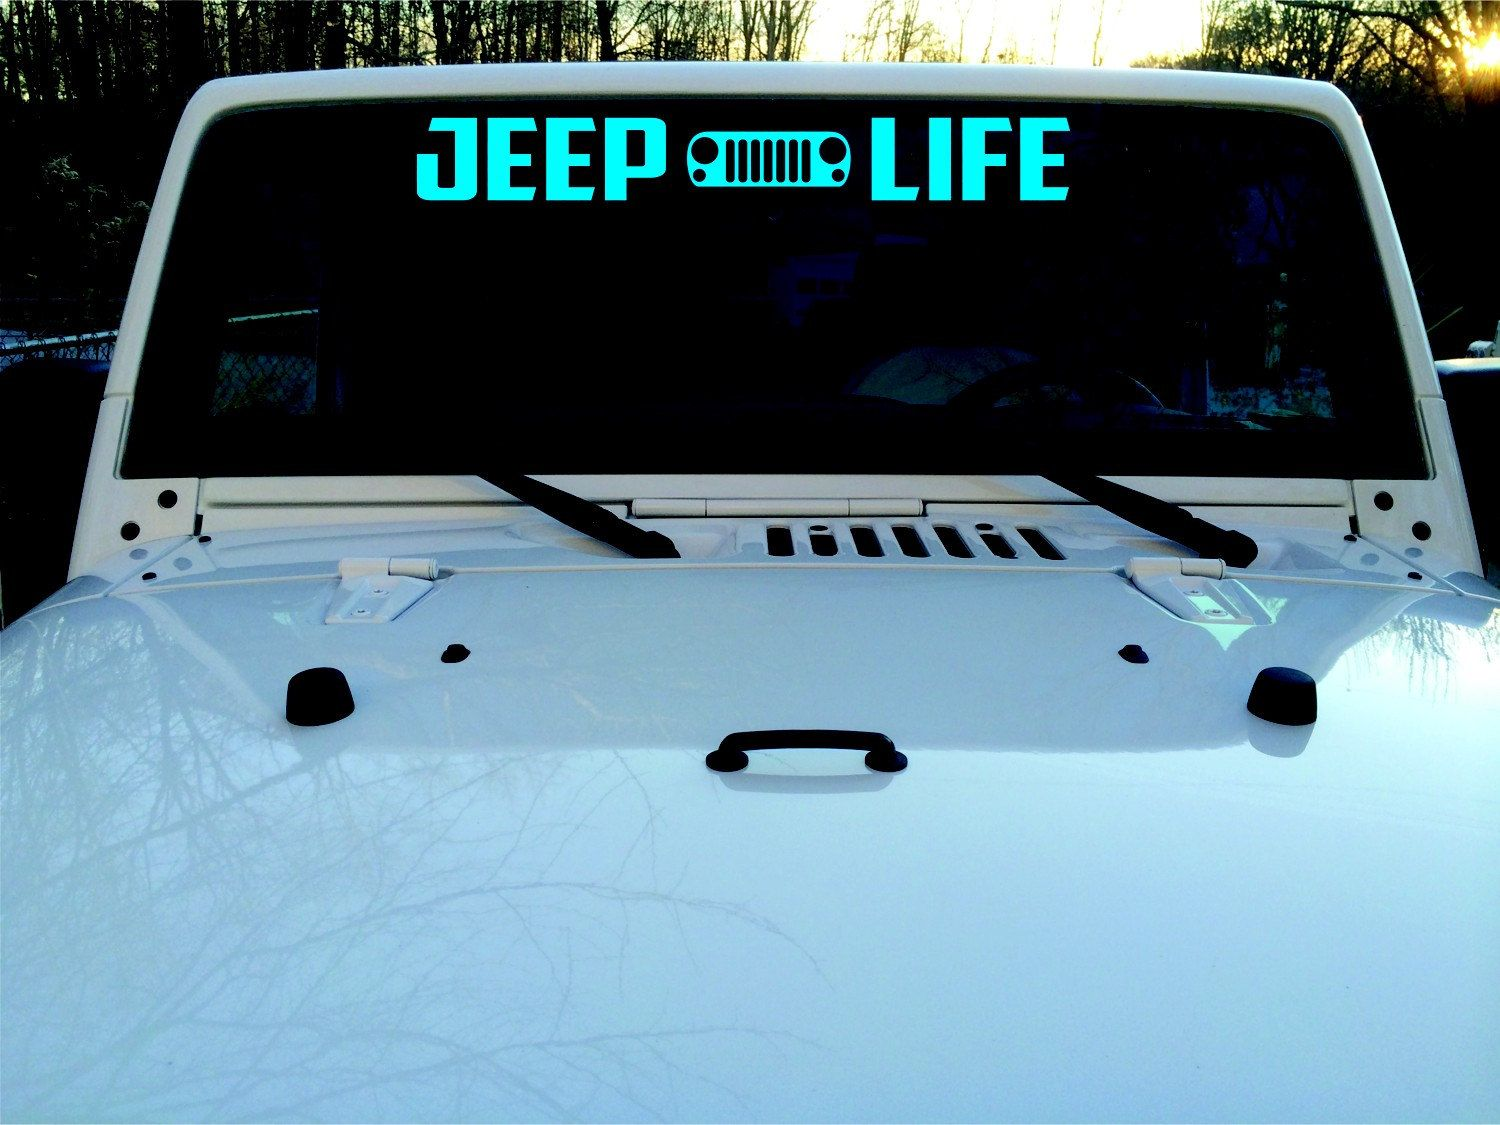 Windshield Decal, Banner, Off Road Decal, Jeep Life